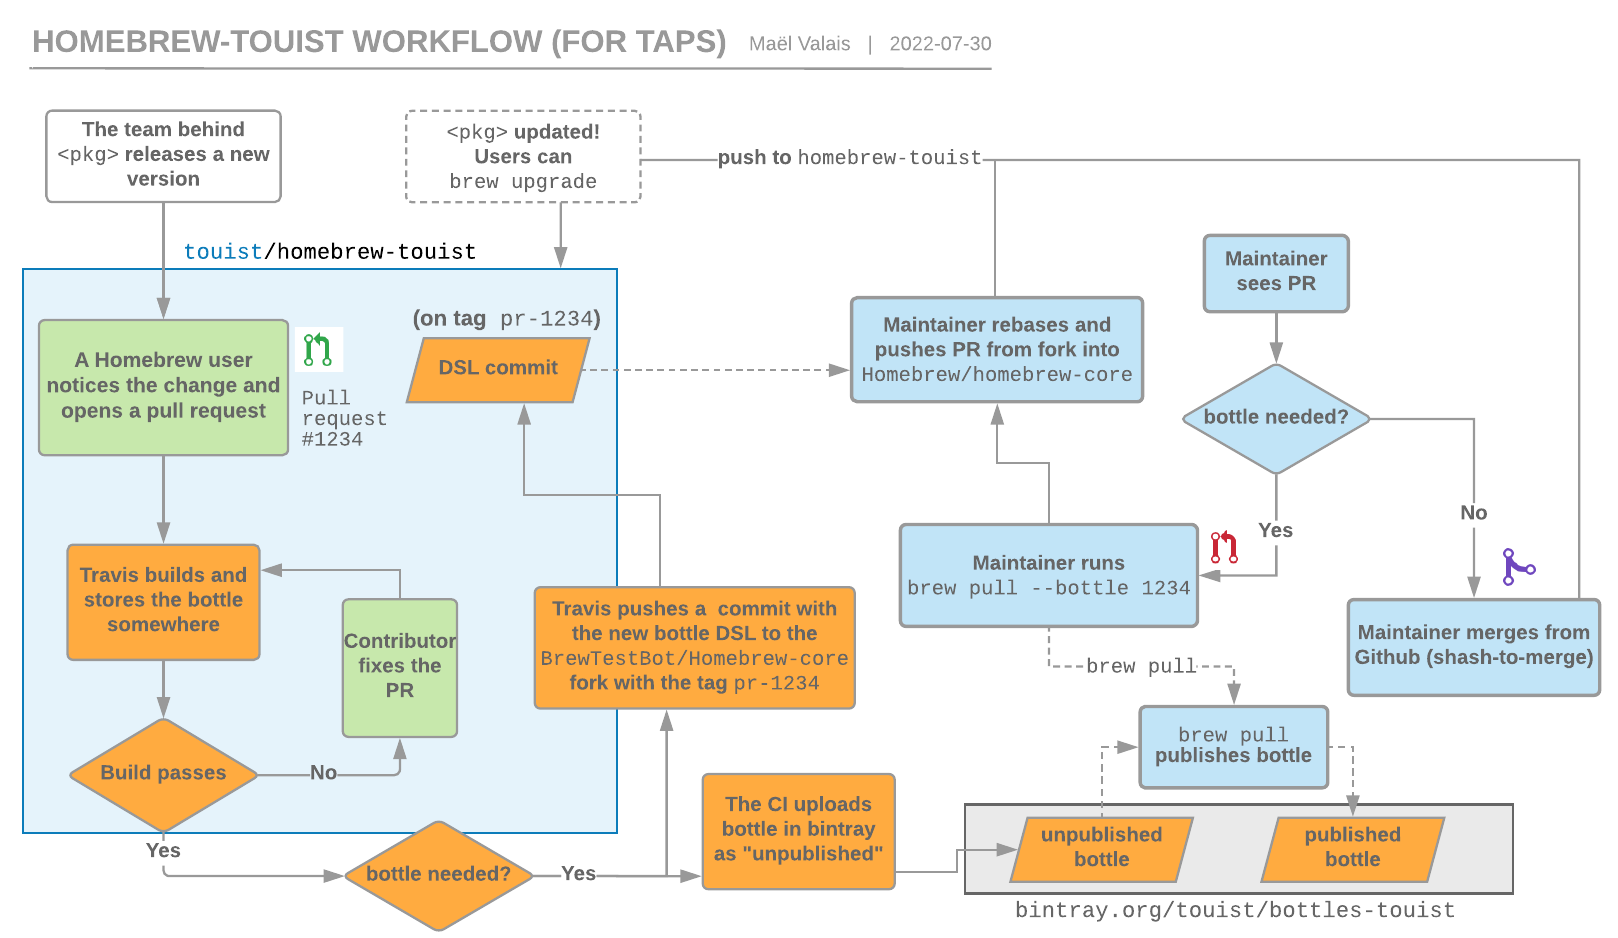 homebrew-touist workflow, a tap